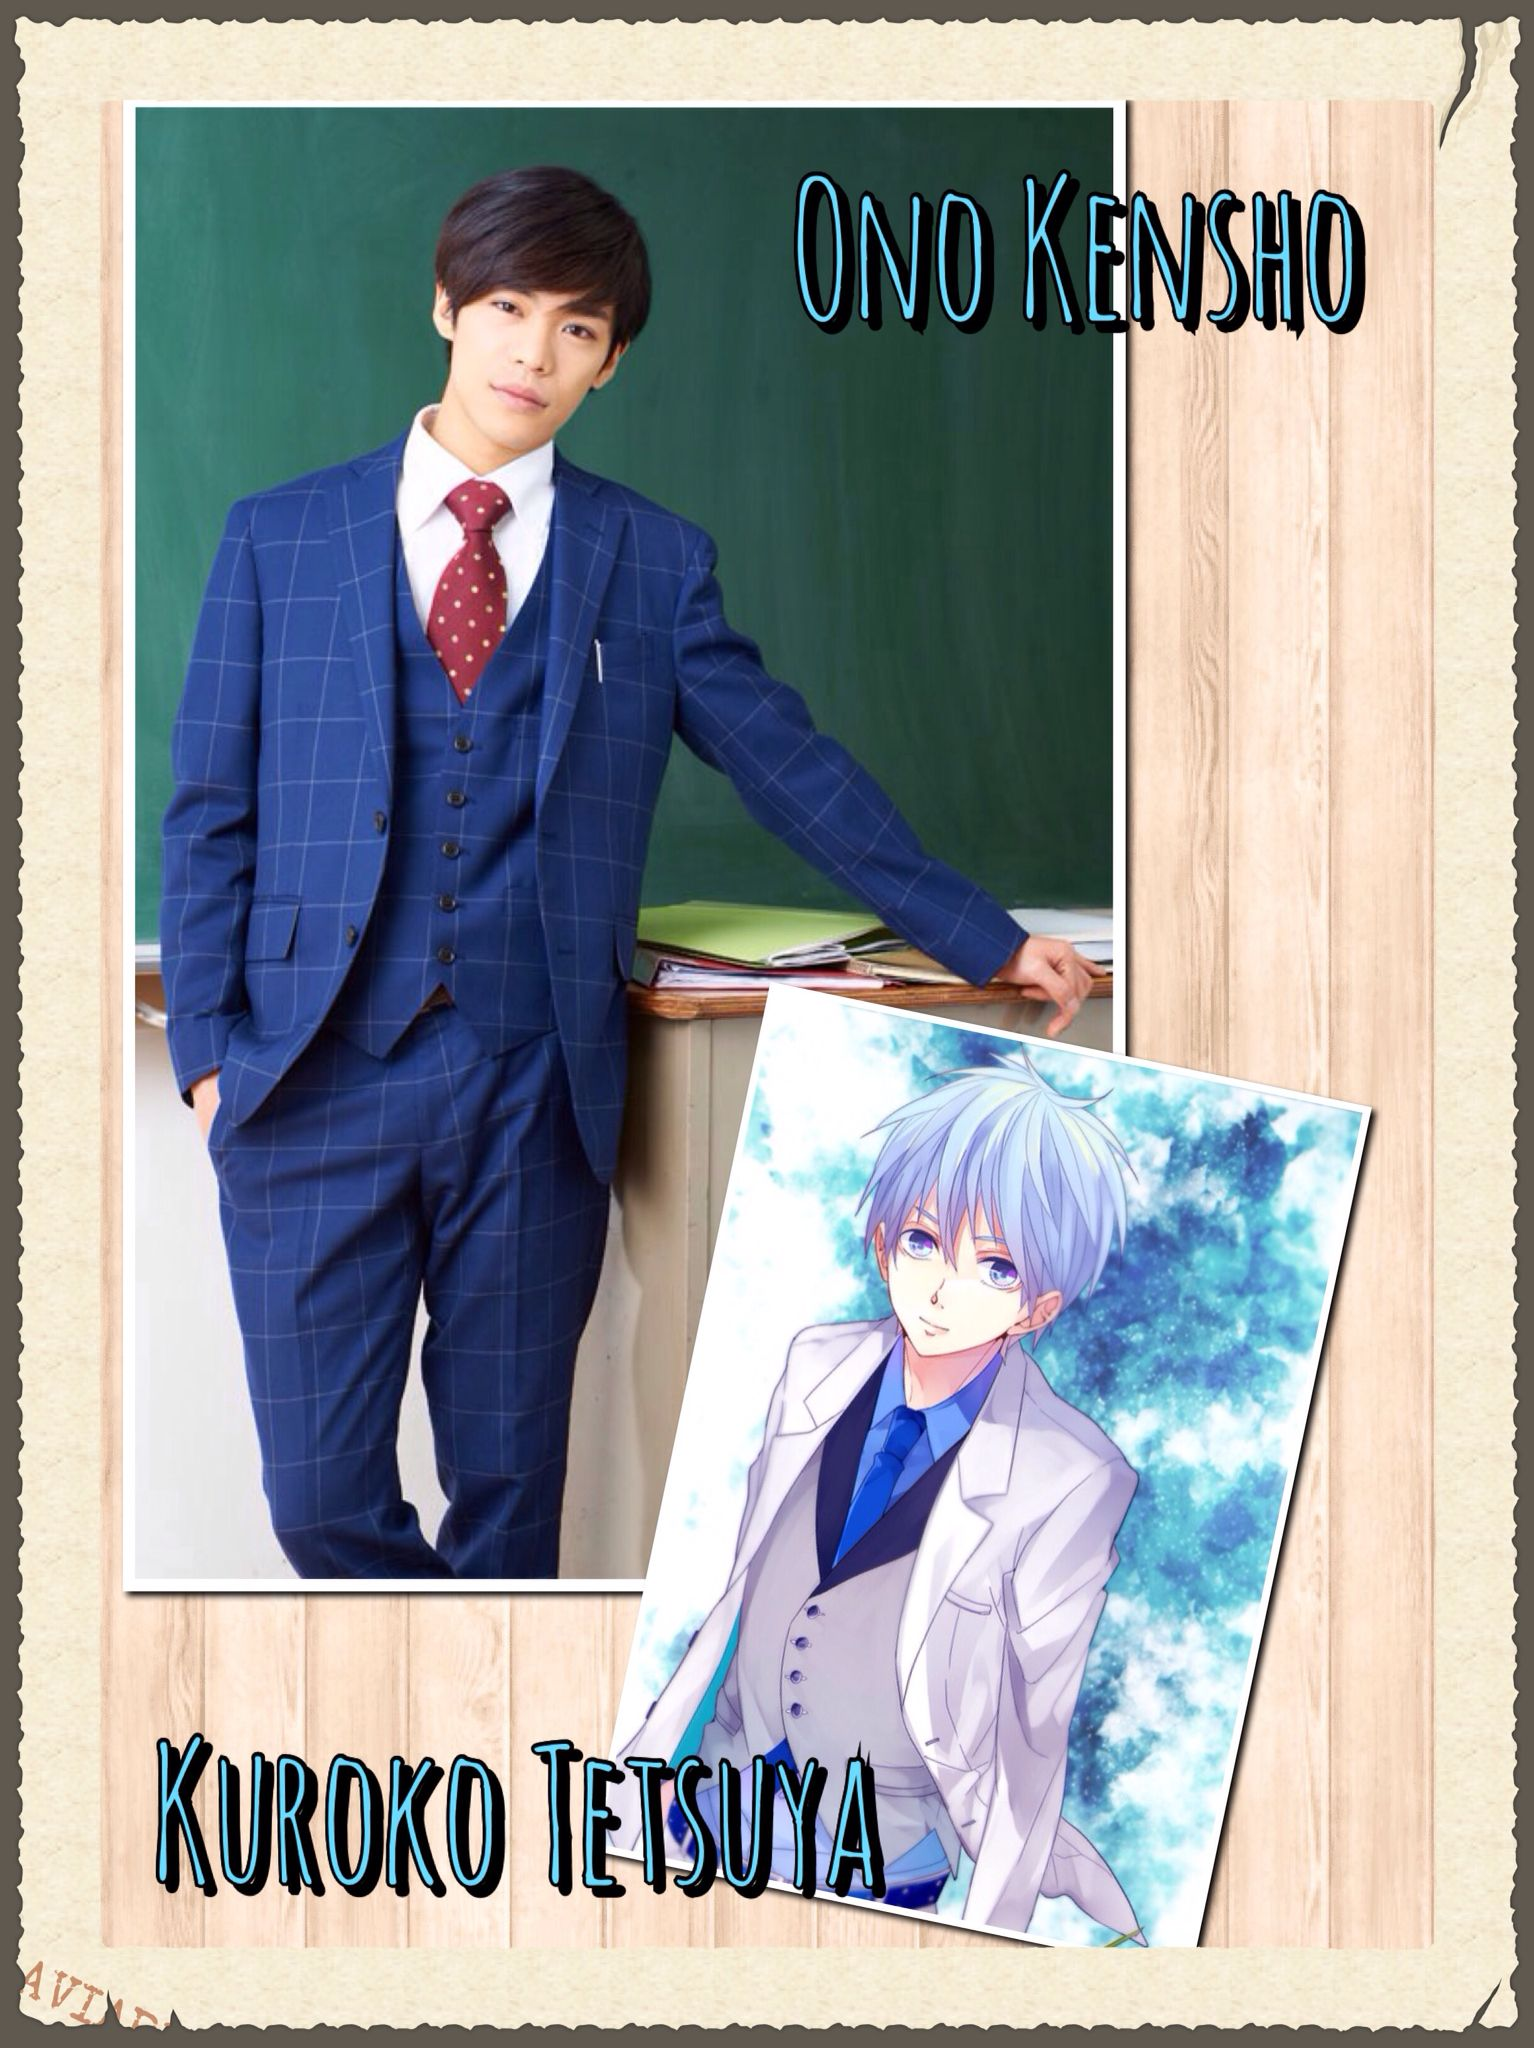 Ono kensho i mean hes seriously handsome3